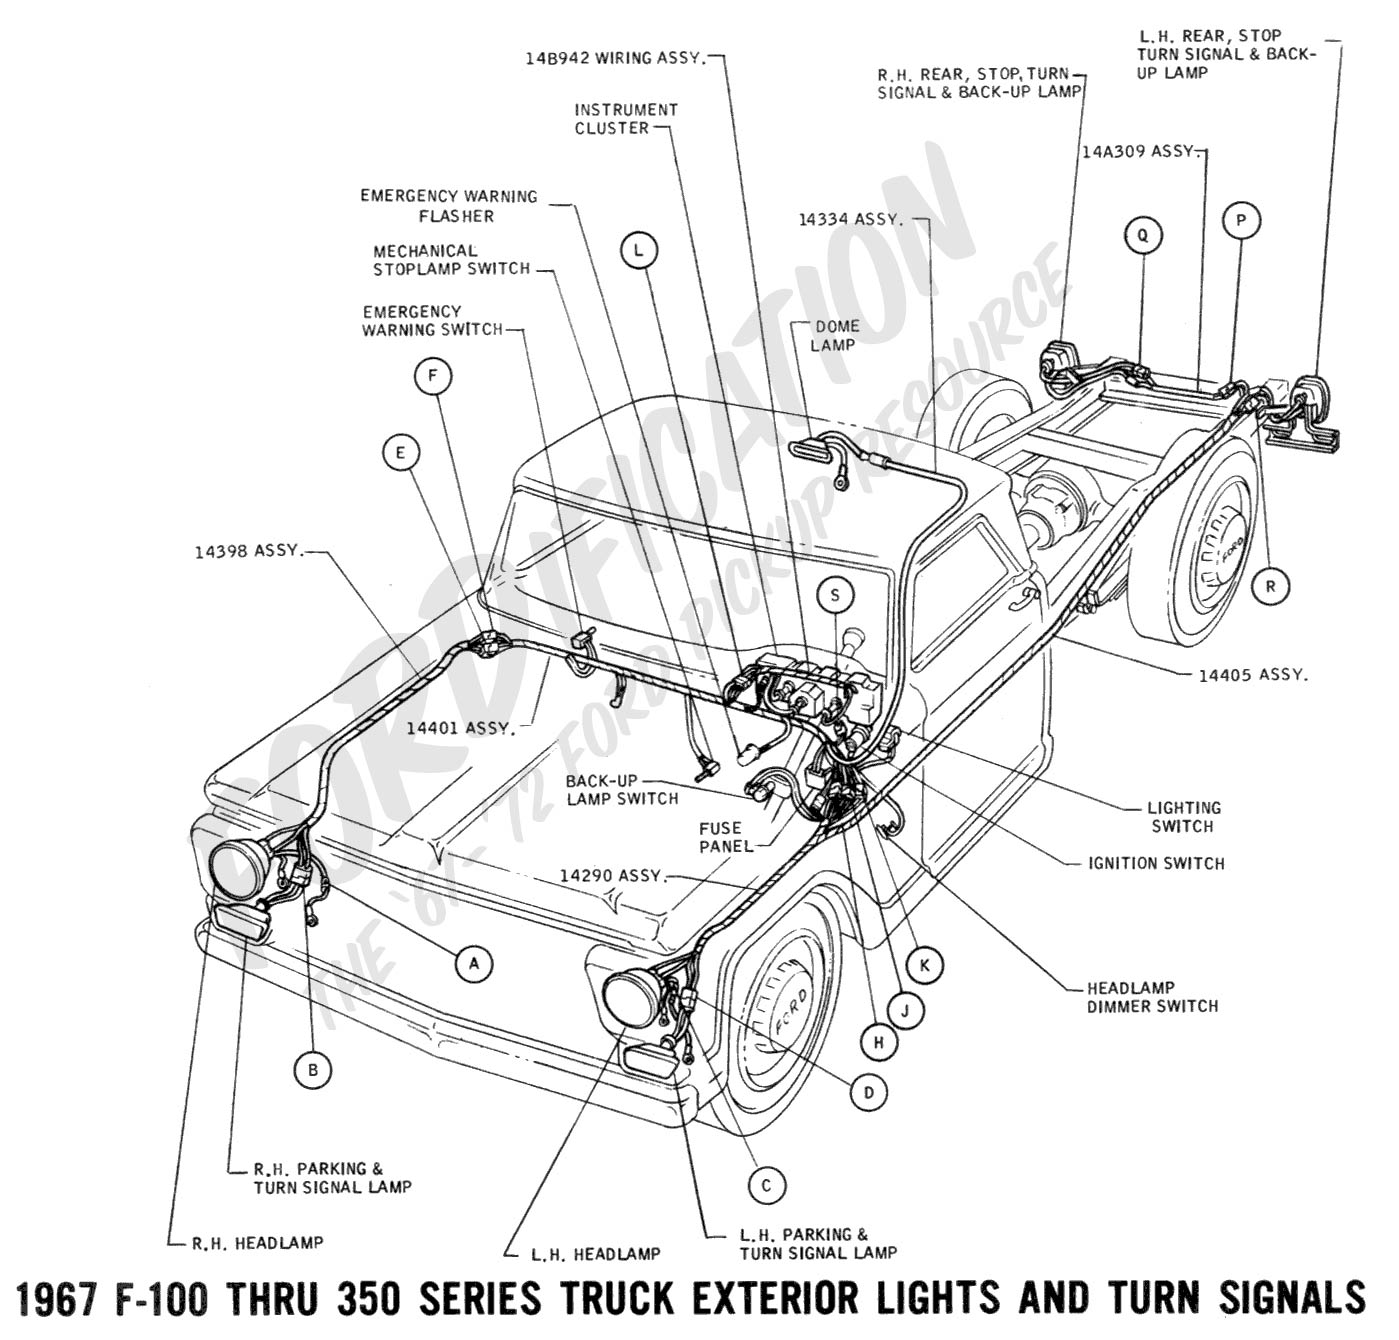 Ford Ranger Schematics - Get Rid Of Wiring Diagram Problem on 2002 ford explorer sport trac wiring schematic, 2003 ford ranger neutral safety switch, 1999 ford windstar wiring schematic, 2010 ford flex wiring schematic, 2010 ford fusion wiring schematic, 2004 ford excursion wiring schematic, 2000 ford mustang wiring schematic, 2003 ford ranger battery, 1998 ford windstar wiring schematic, 2007 ford taurus wiring schematic, 2001 ford mustang wiring schematic, 2008 ford f-150 wiring schematic, 1979 ford f150 wiring schematic, 2003 ford ranger electrical, 2002 ford f-250 wiring schematic, 2003 ford ranger steering, 2003 ford ranger horn relay, 2003 ford ranger gauges, 2003 ford ranger brake light, 2003 ford ranger fuel pump relay,